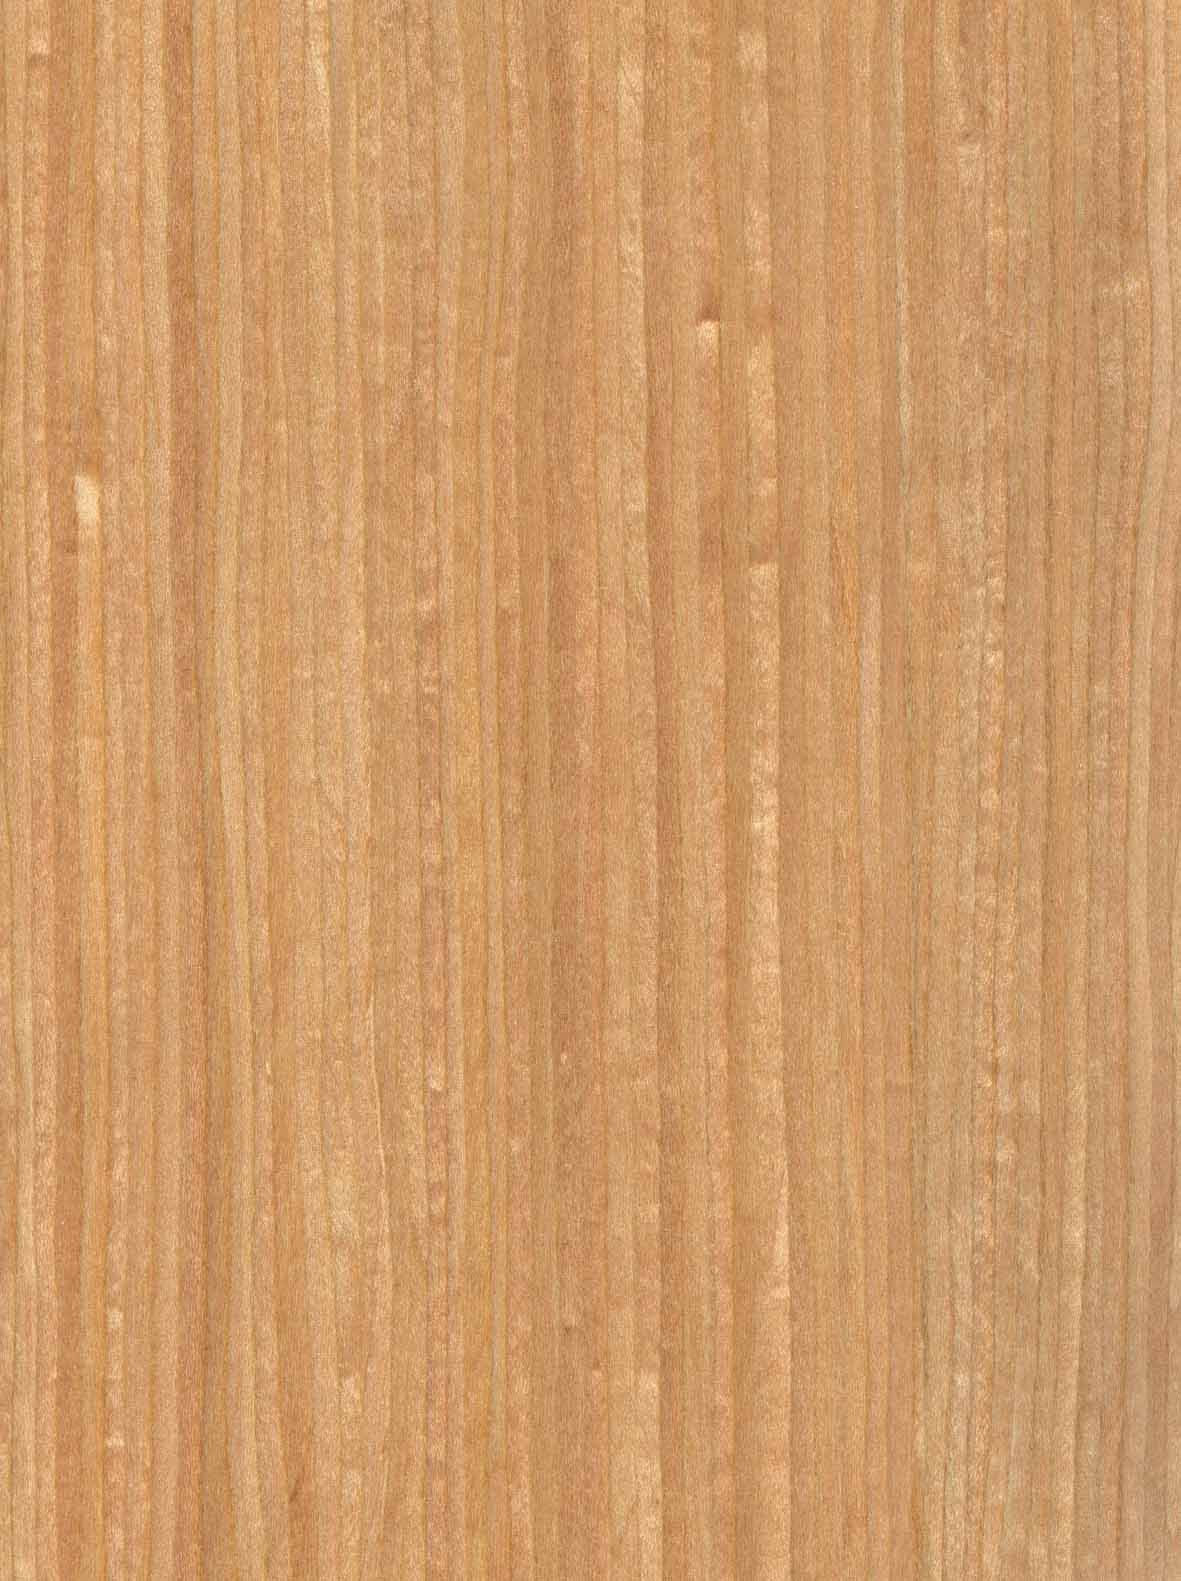 48 Cherry Wood Wallpaper On Wallpapersafari